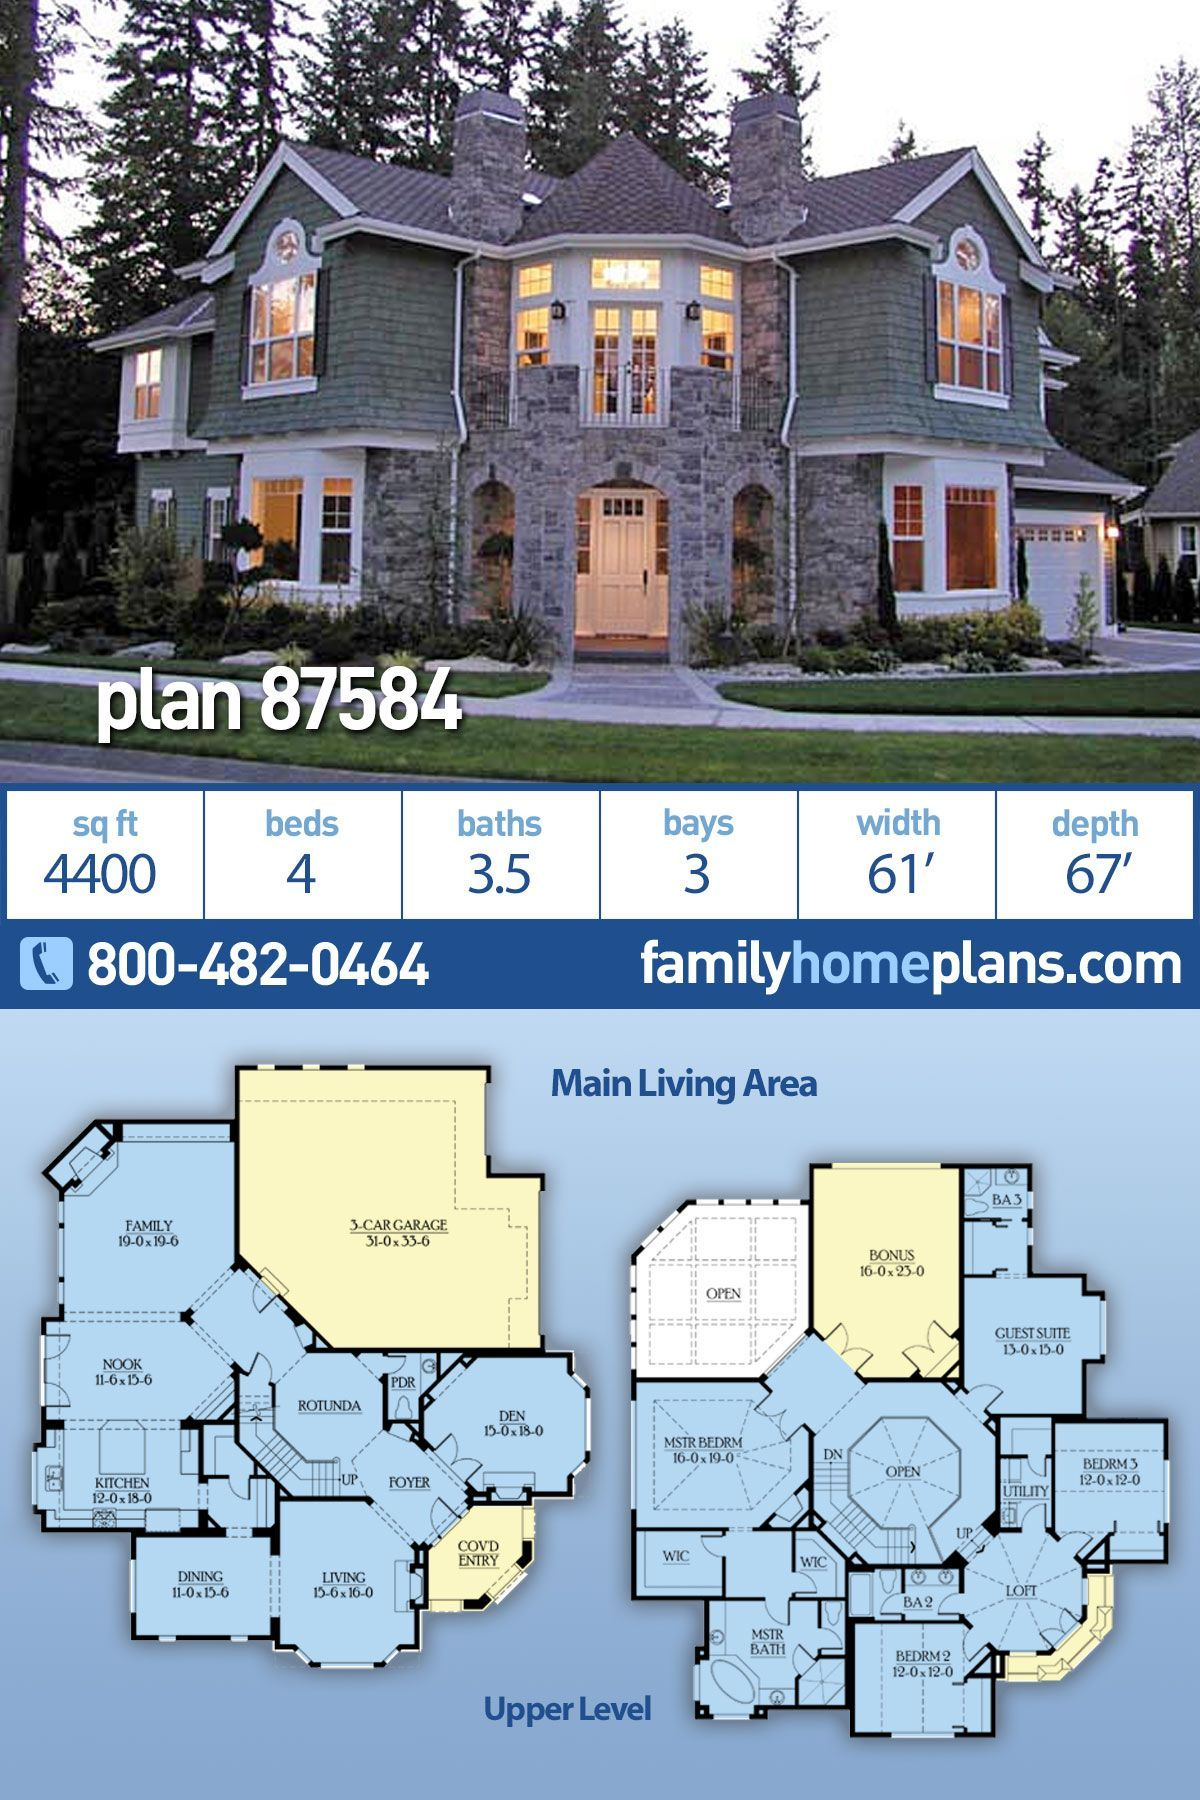 Traditional Luxury House Plan 87584 Has 4400 Sq Ft 4 Bedrooms 3 5 Bathrooms And A 3 Bay Garag In 2020 Large House Plans Craftsman House Plans Beach House Flooring